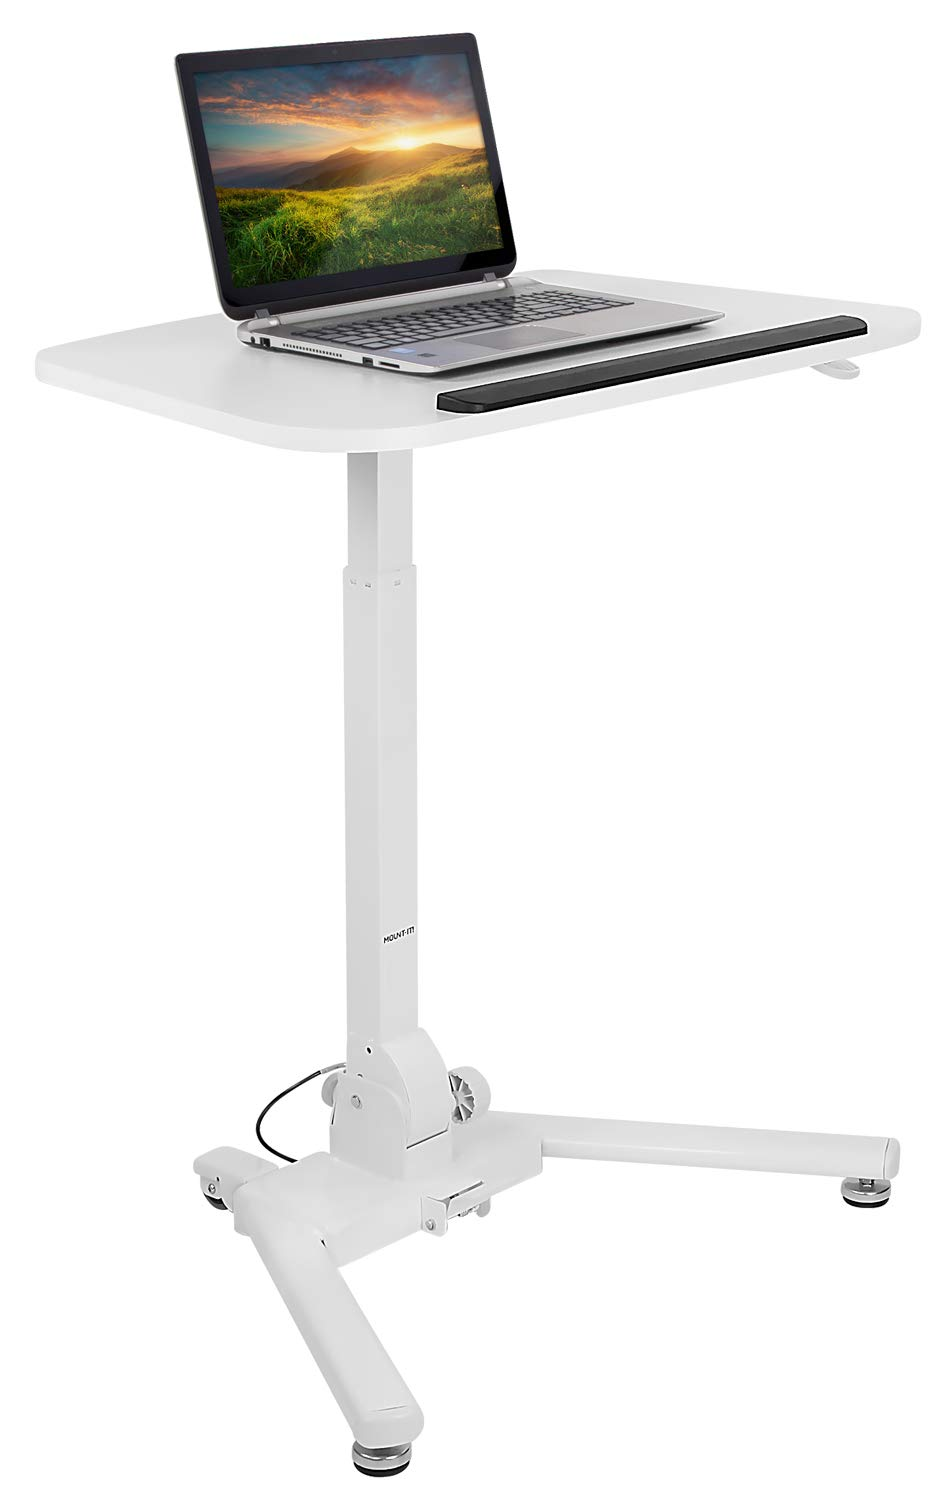 Mount-It! Standing Folding Laptop Cart, Sit Stand Mobile Desk with Height Adjustable 31.1'' x 20.5'' Platform, Supports up to 17.6 lbs, White (MI-7949) by Mount-It! (Image #2)